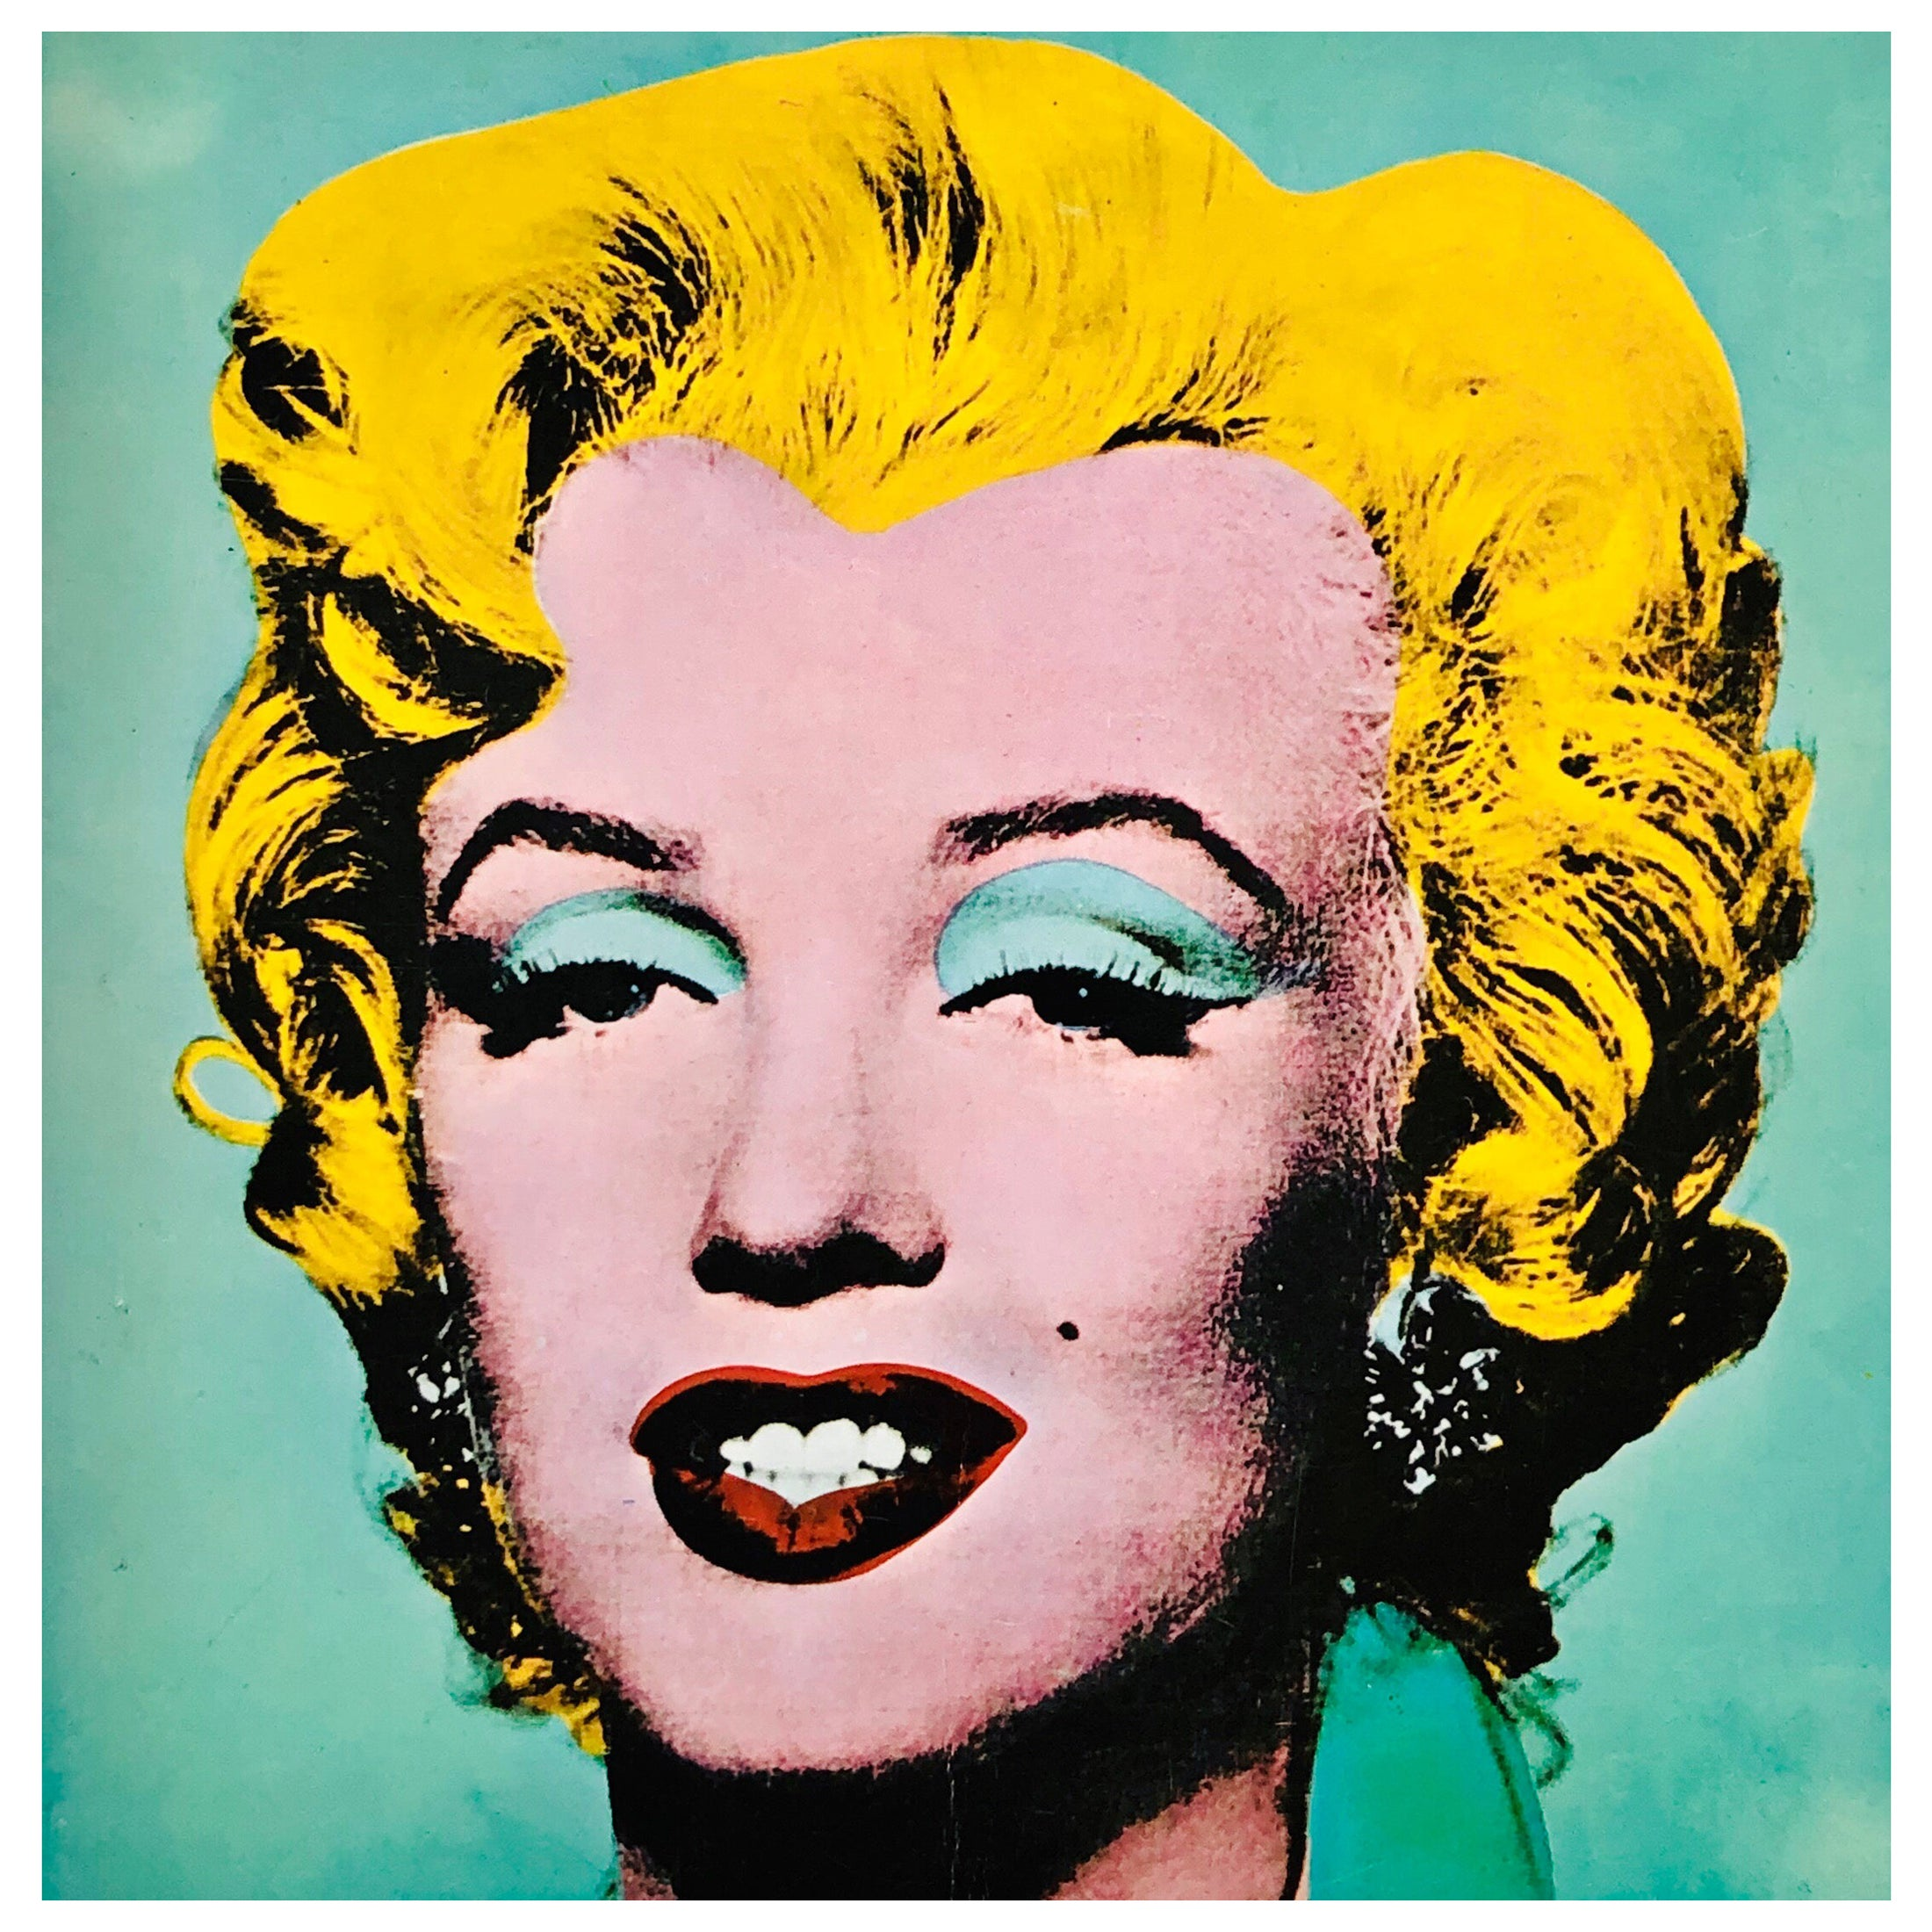 Andy Warhol Tate Gallery Catalog 1971 (Warhol Marilyn and Liz cover)